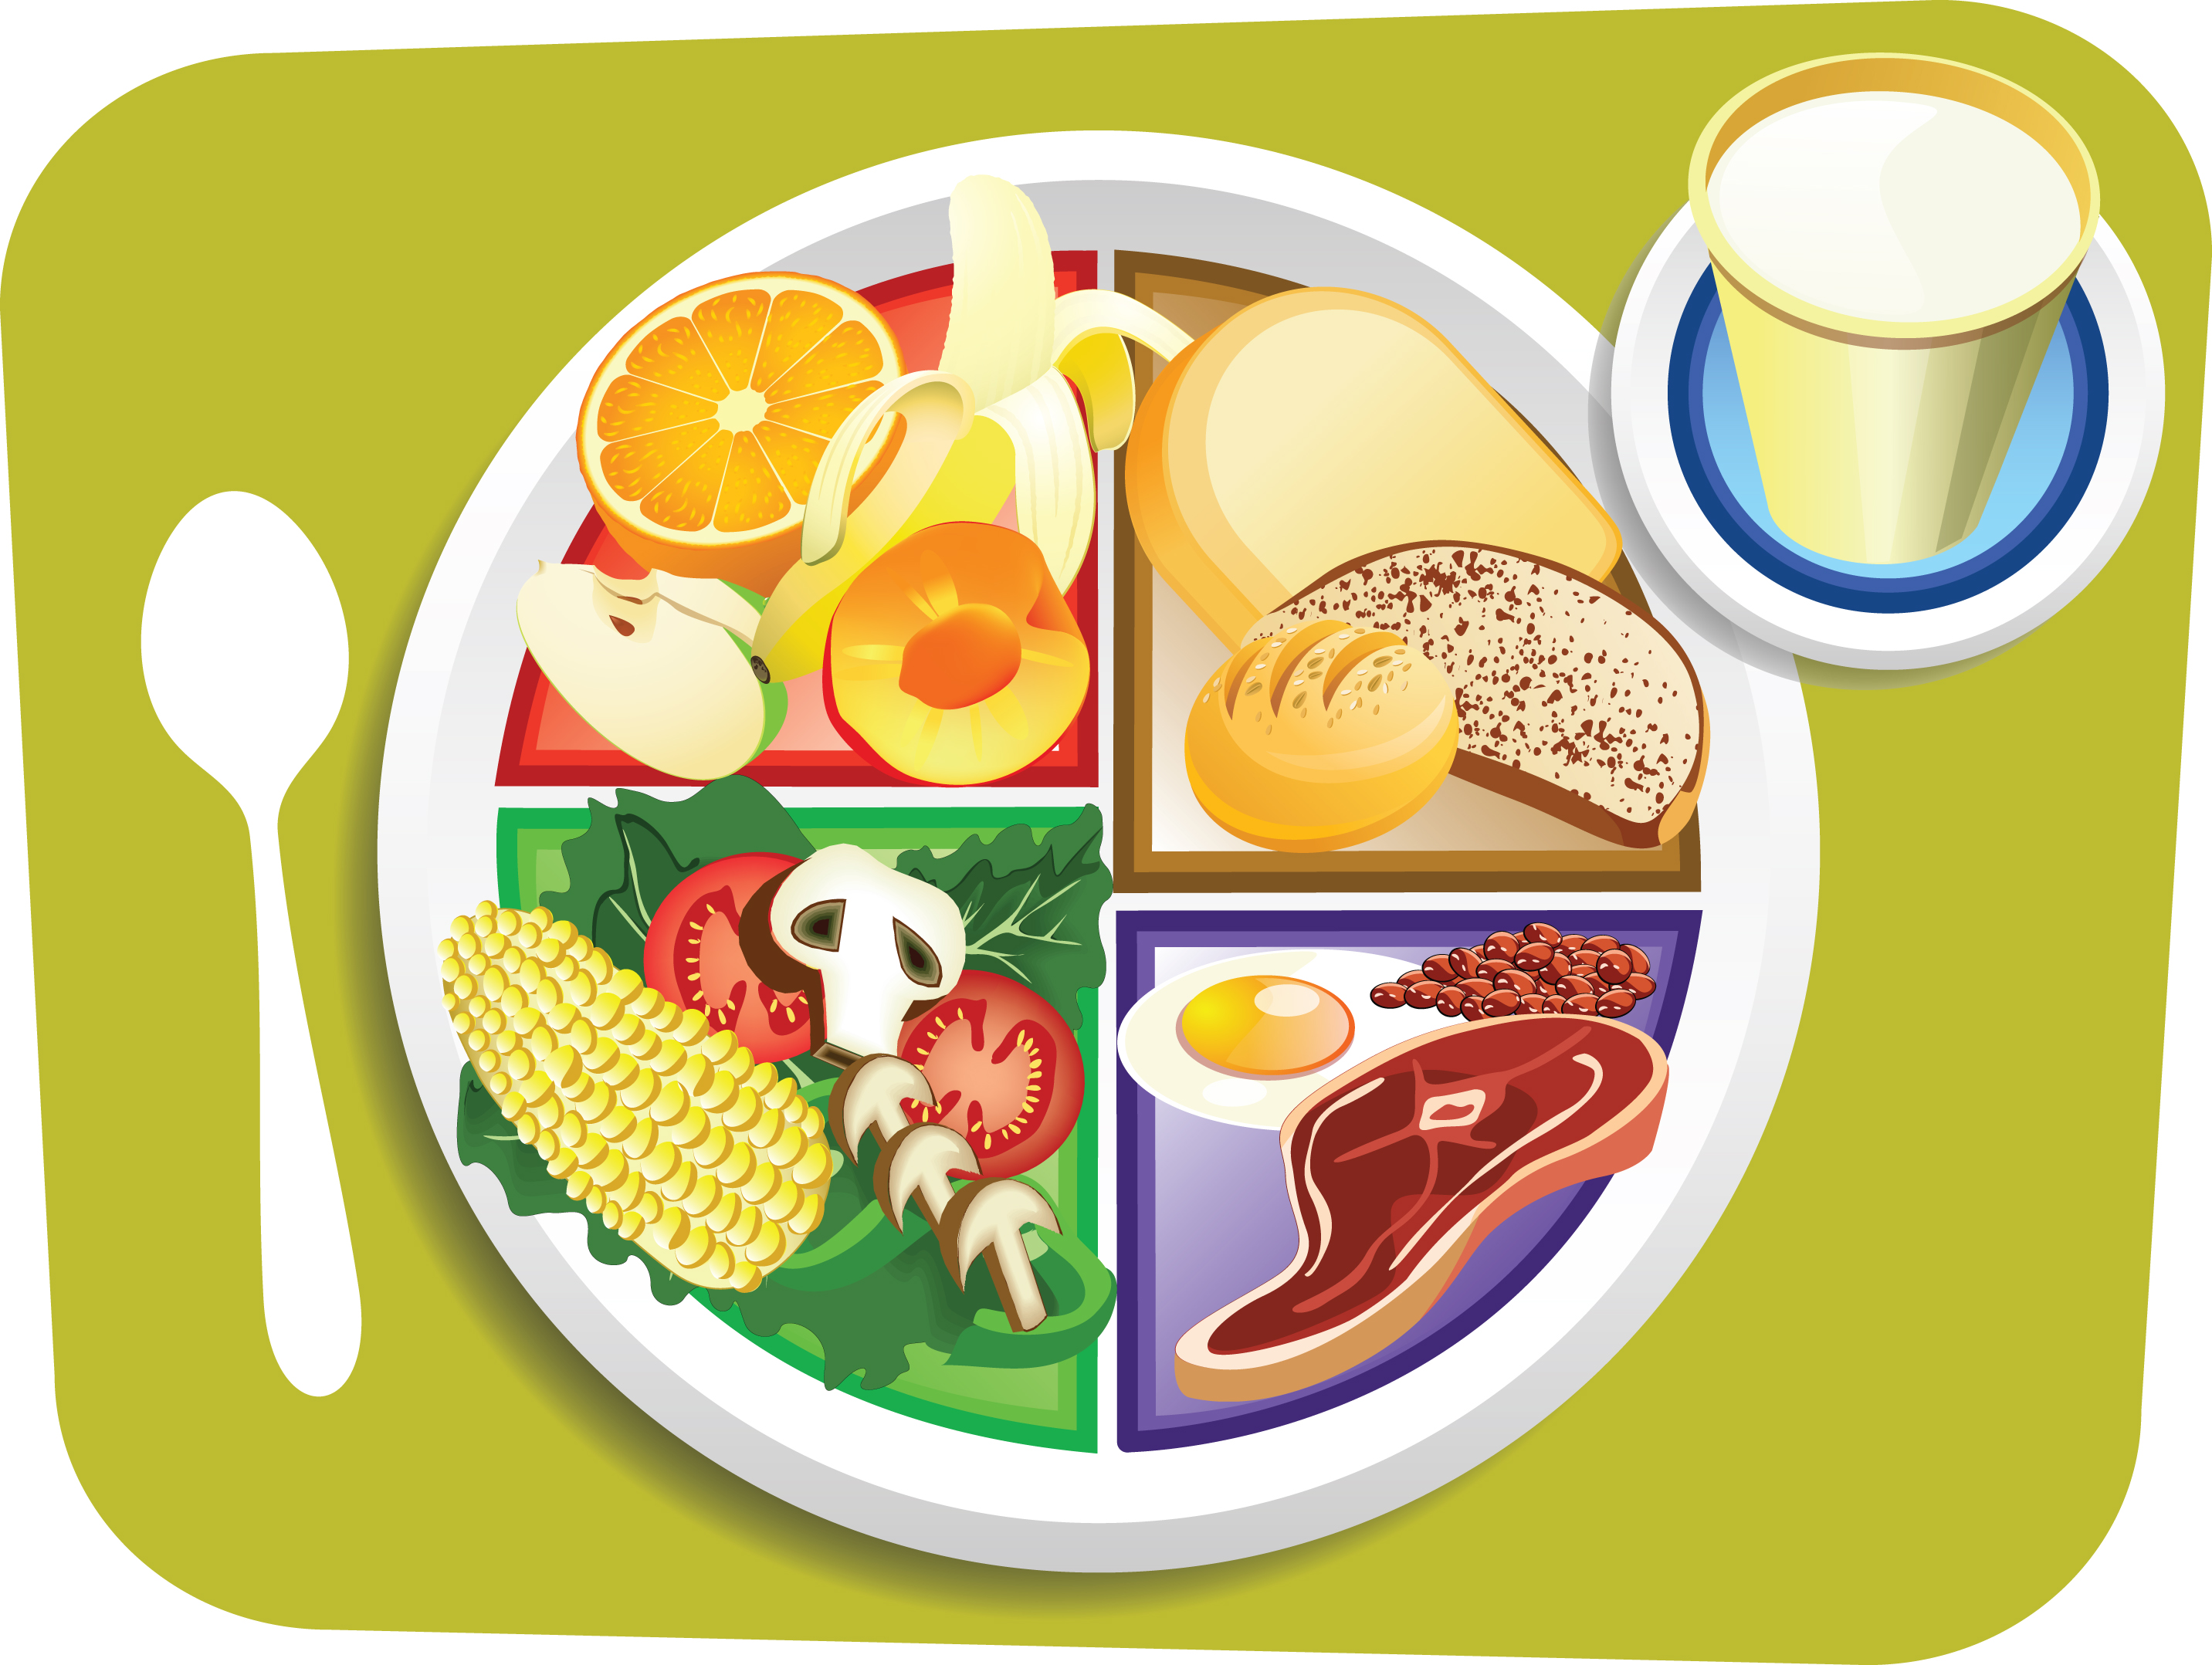 Artist rendition of MyPlate food guidelines